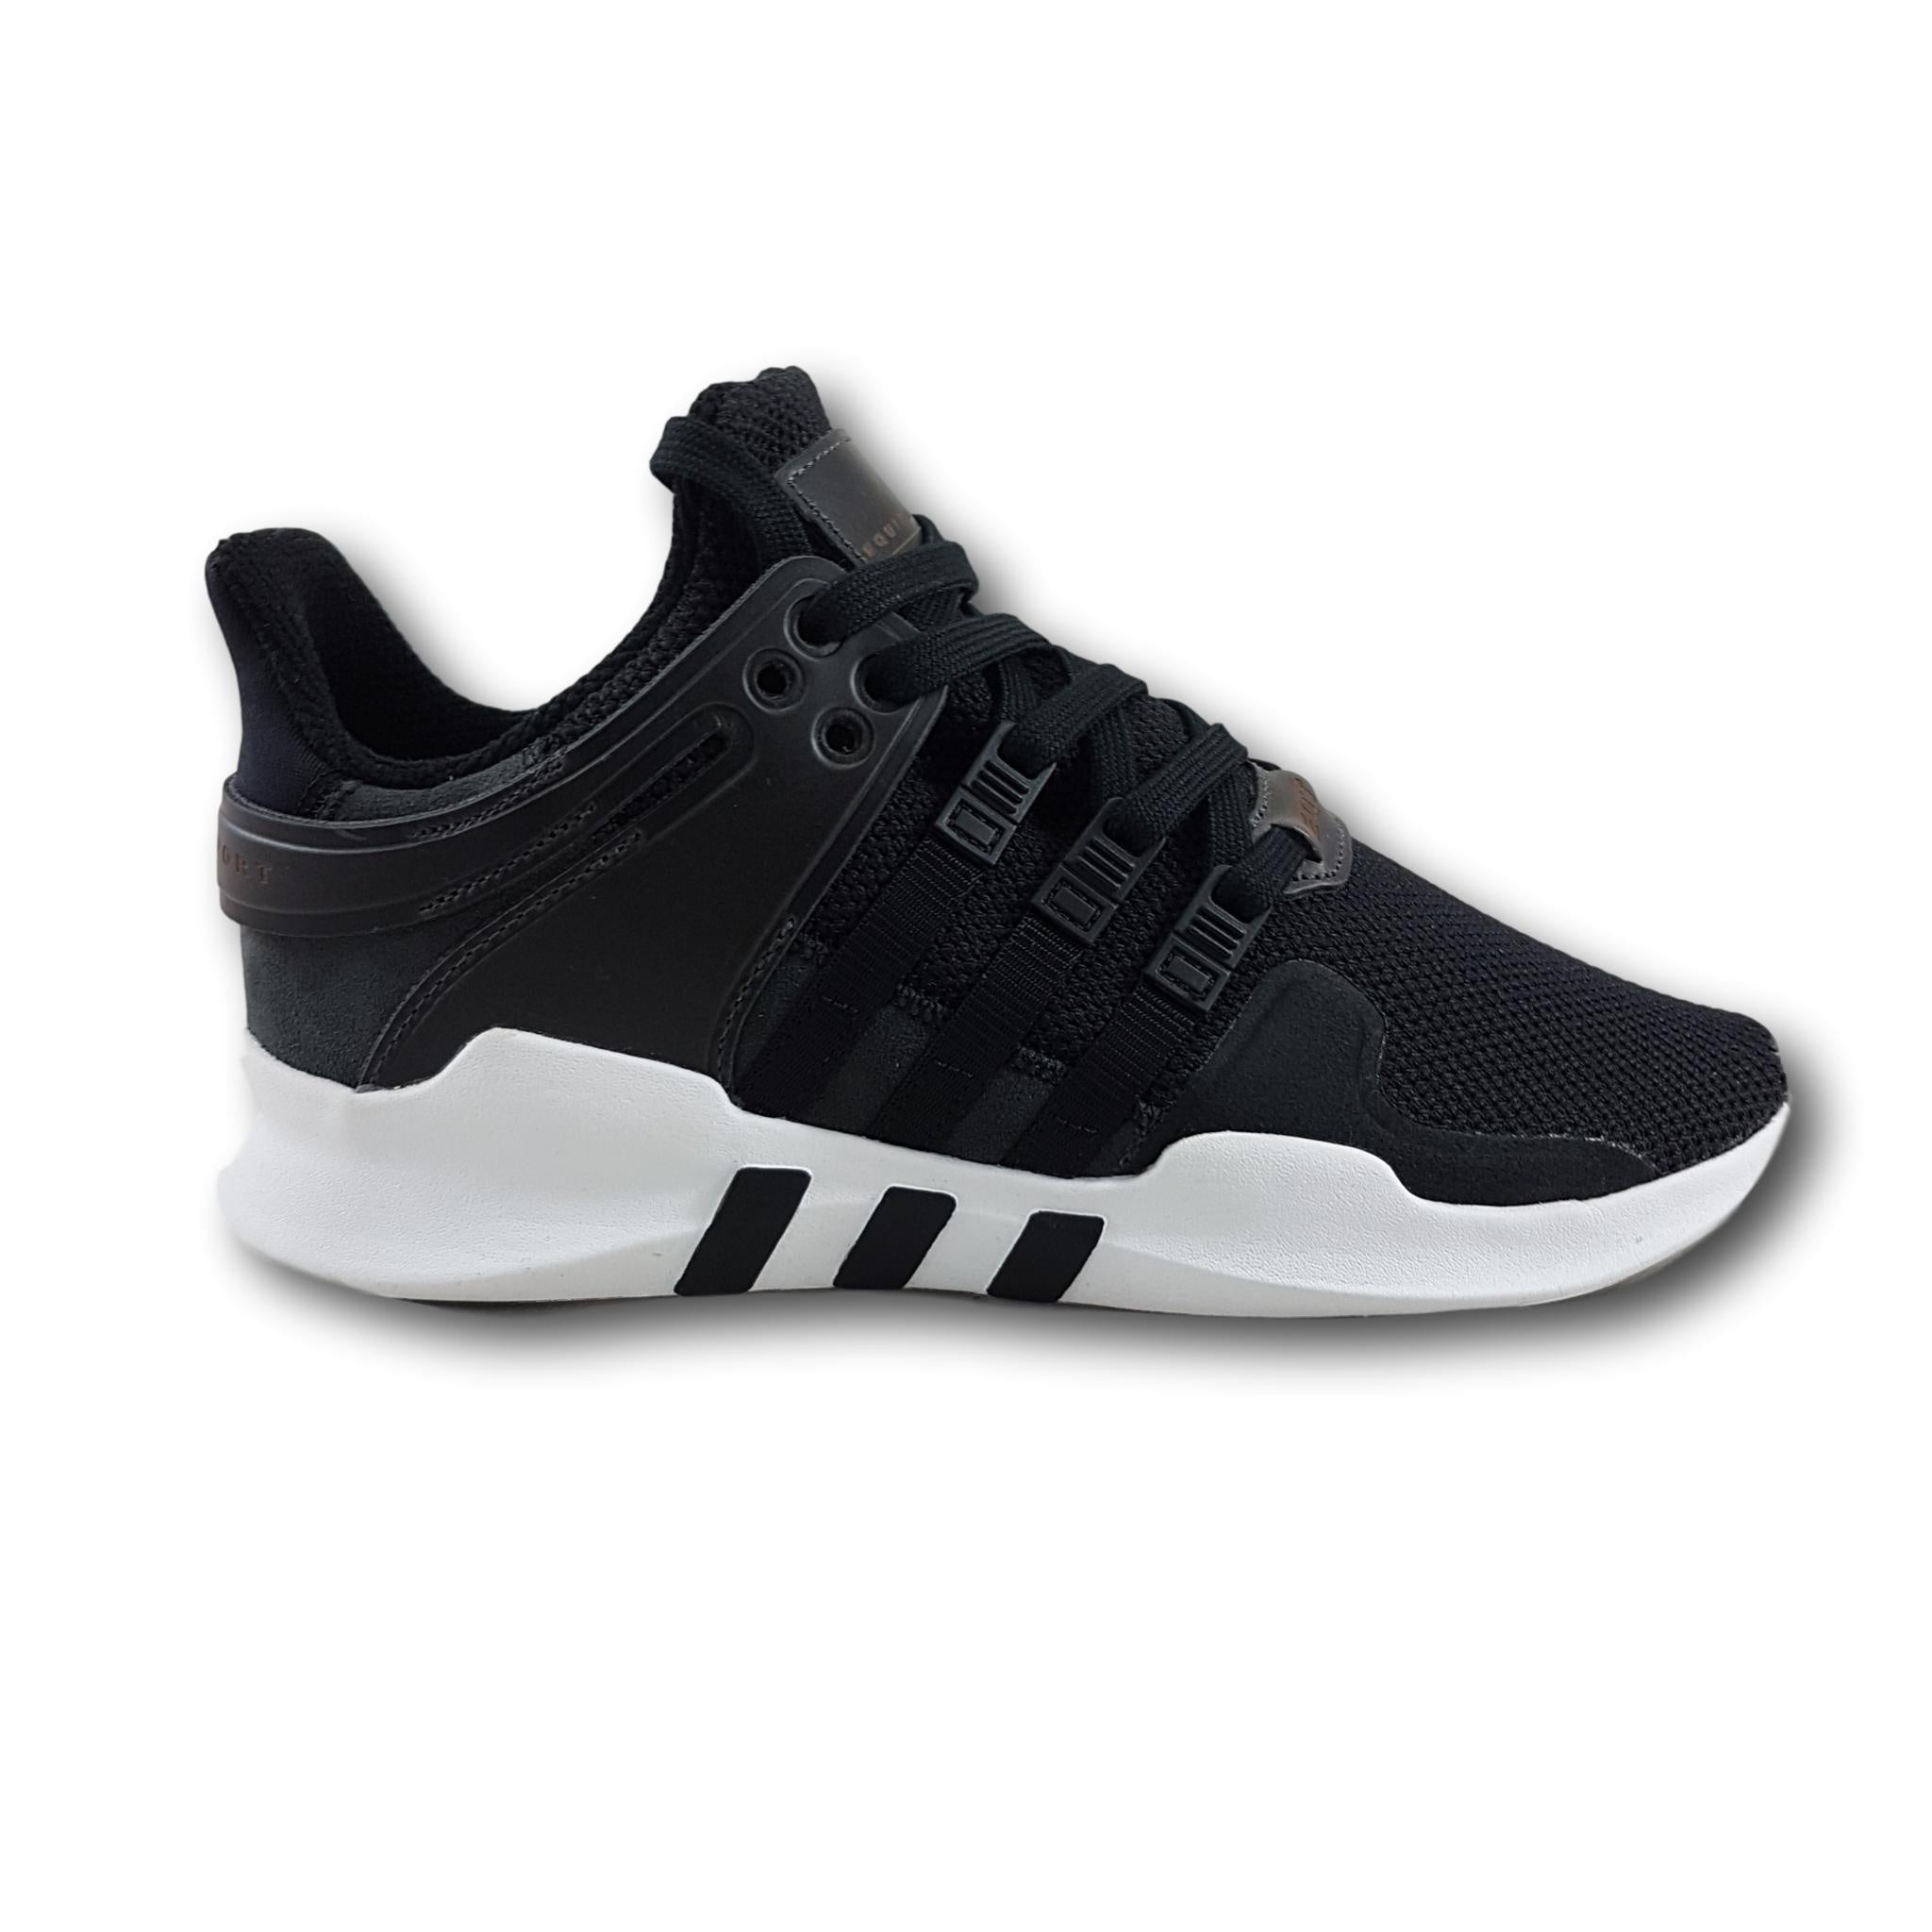 Adidas EQT Support ADV Black/Black/White